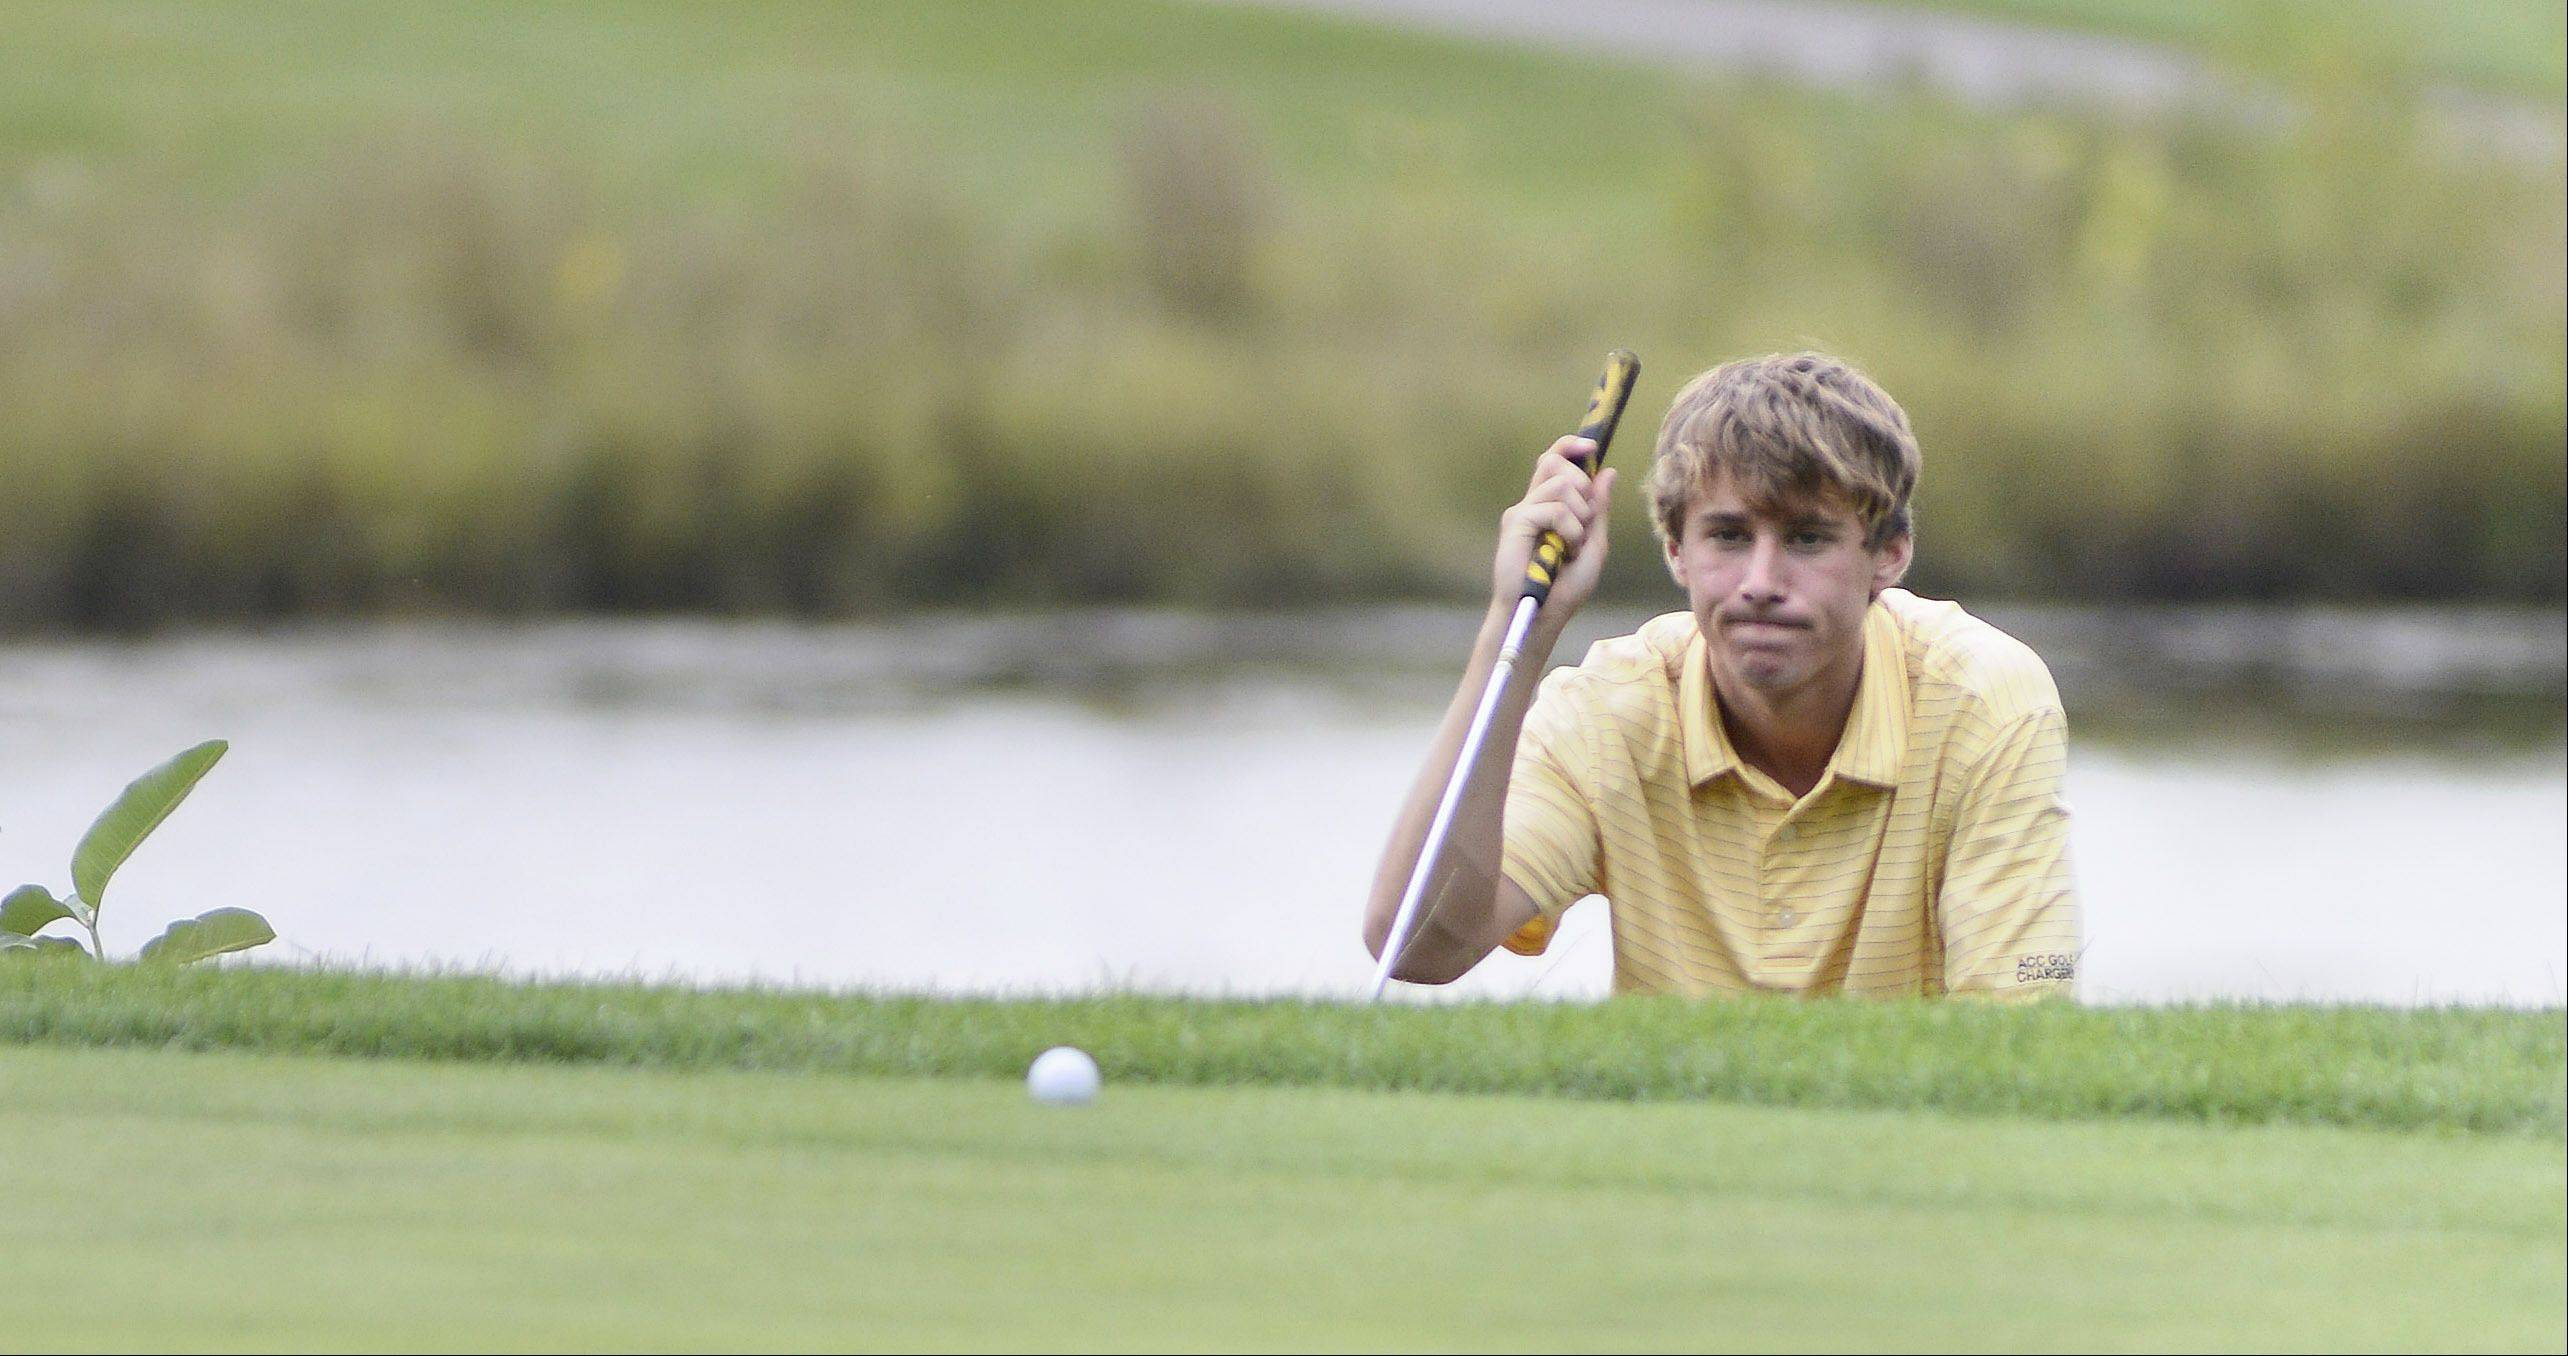 Aurora Central Catholic�s Justin Prince judges his shot after hitting the ball out of the sand trap on the sixth hole at Phillips Park Golf Course in Aurora on Wednesday, September 18.